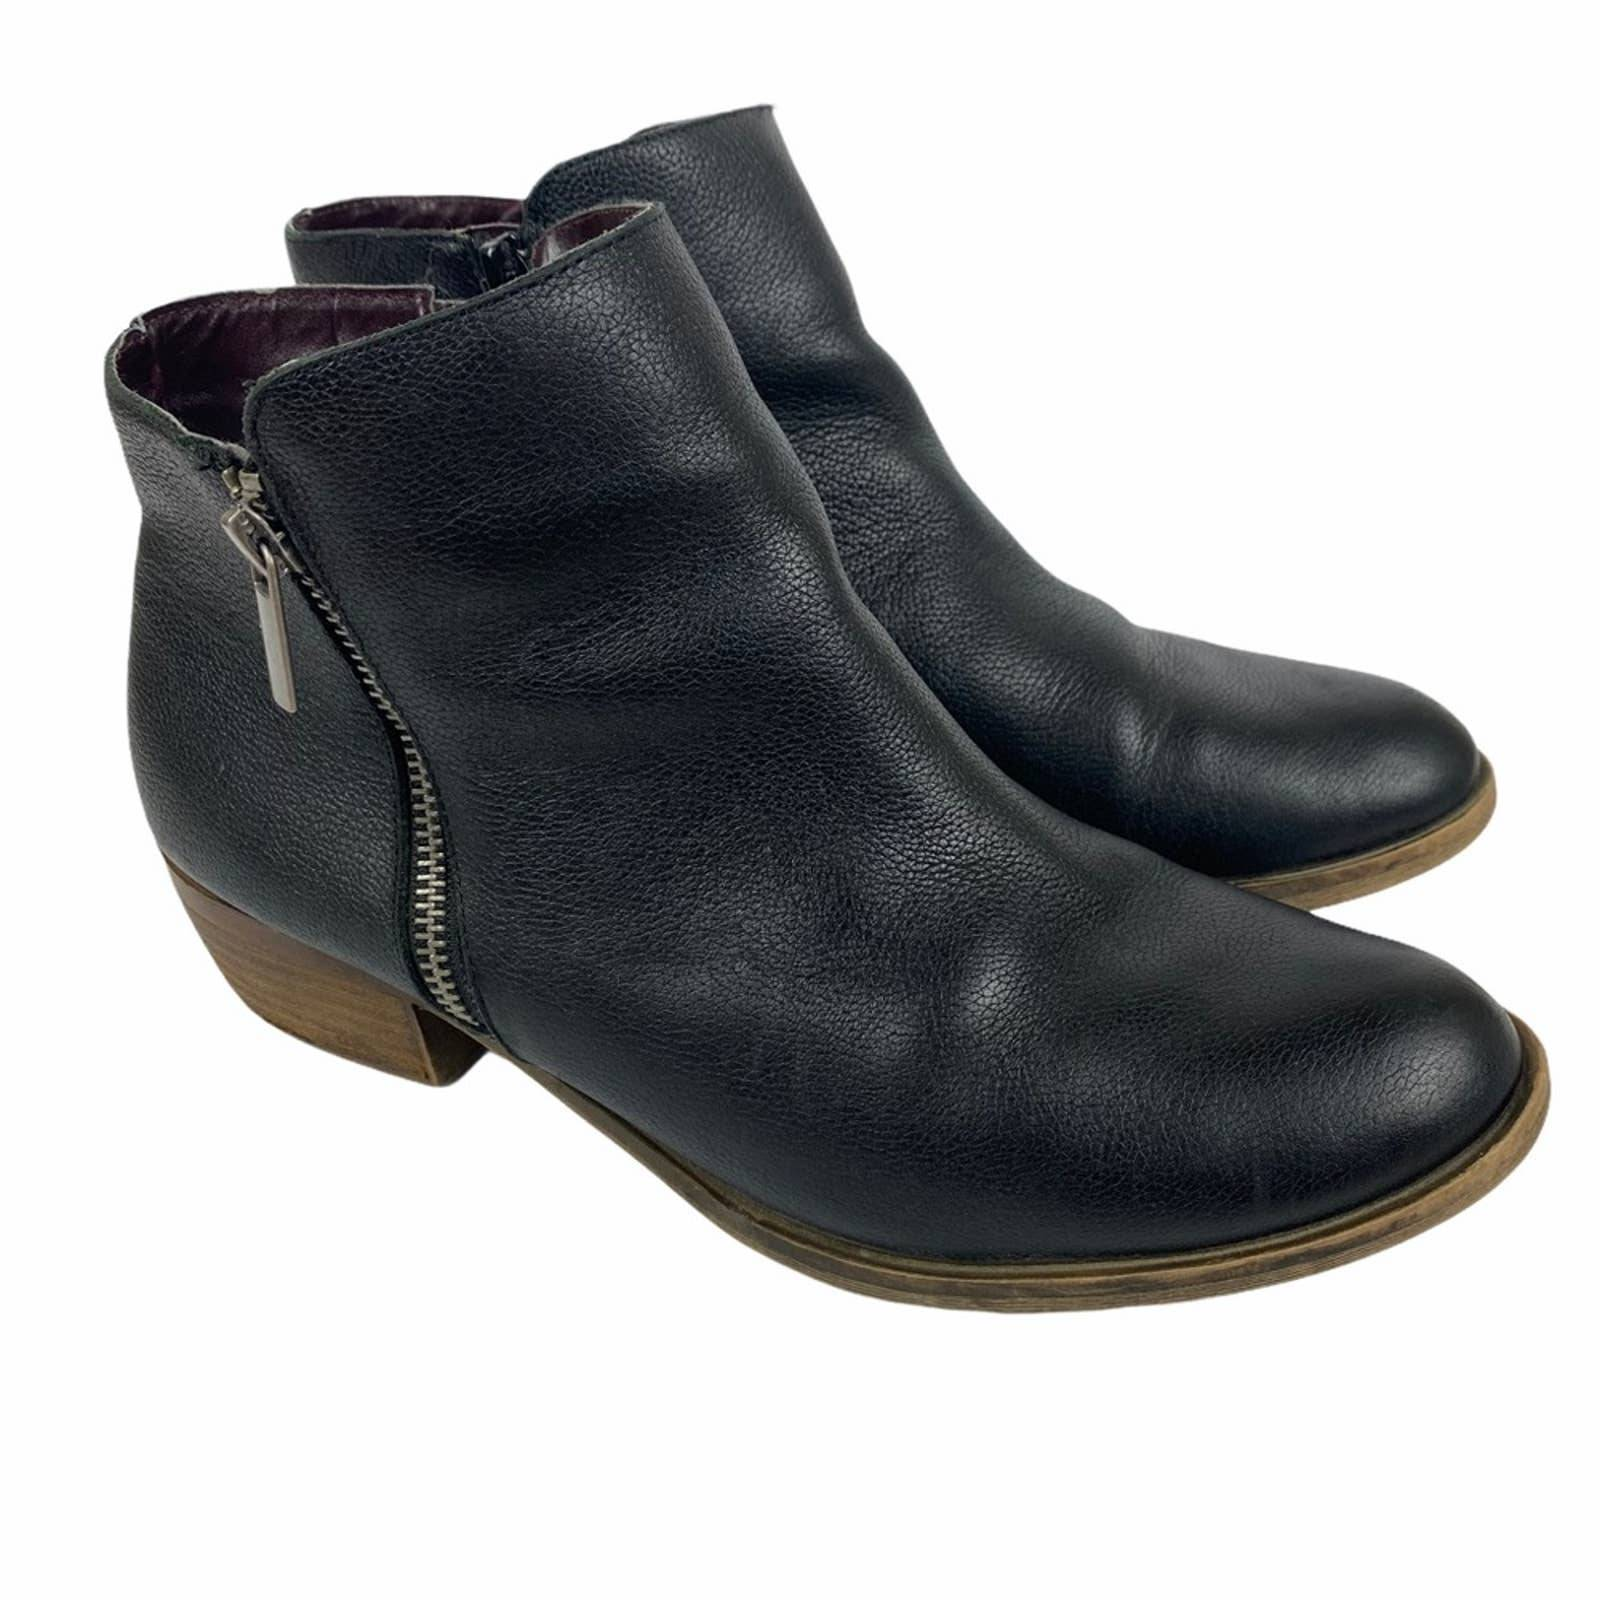 Kensie Ghita Ankle Boots Black Leather